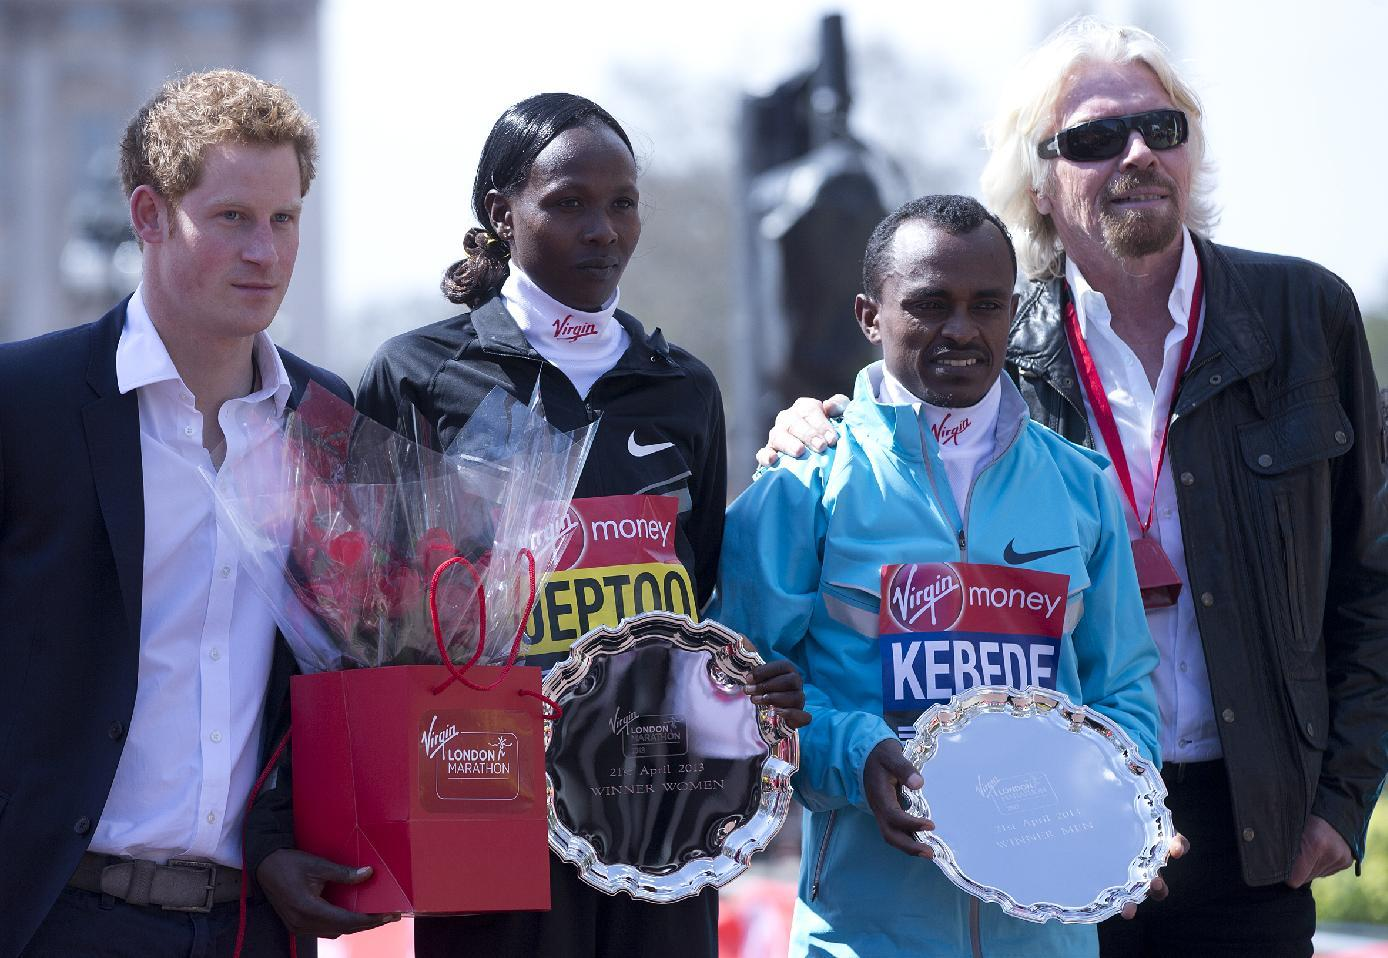 Tsegaye Kebede of Ethiopia, second right, winner of the men's marathon, Priscah Jeptoo of Kenya, second left, winner of the women's marathon with Britain's Prince Harry, left, and British businessman Richard Branson, right, pose together after the medal presentations for the London Marathon in the Mall, Sunday, April 21, 2013. A defiant, festive mood prevailed Sunday as the London Marathon began on a glorious spring day despite concerns raised by the bomb attacks on the Boston Marathon six days ago, as thousands of runners offered tributes to those killed and injured in Boston, with a moment of silence before the race, and many wore black ribbons as a sign of solidarity.(AP Photo/Alastair Grant)